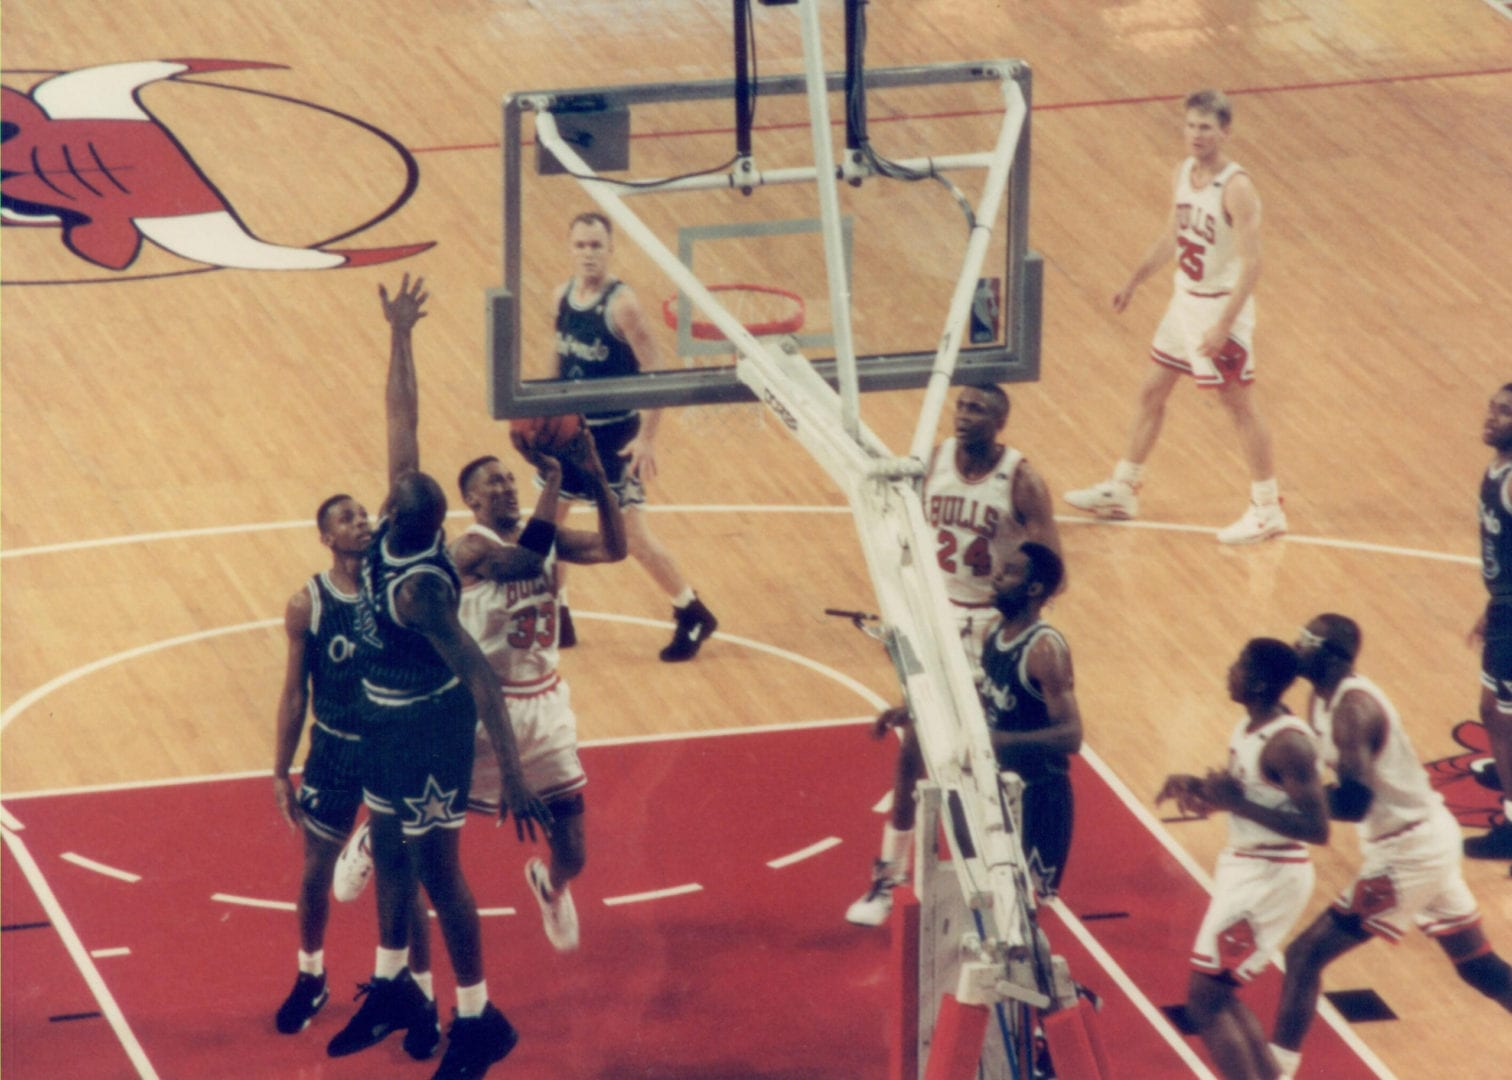 An image of Scottie Pippen jumping to the basket